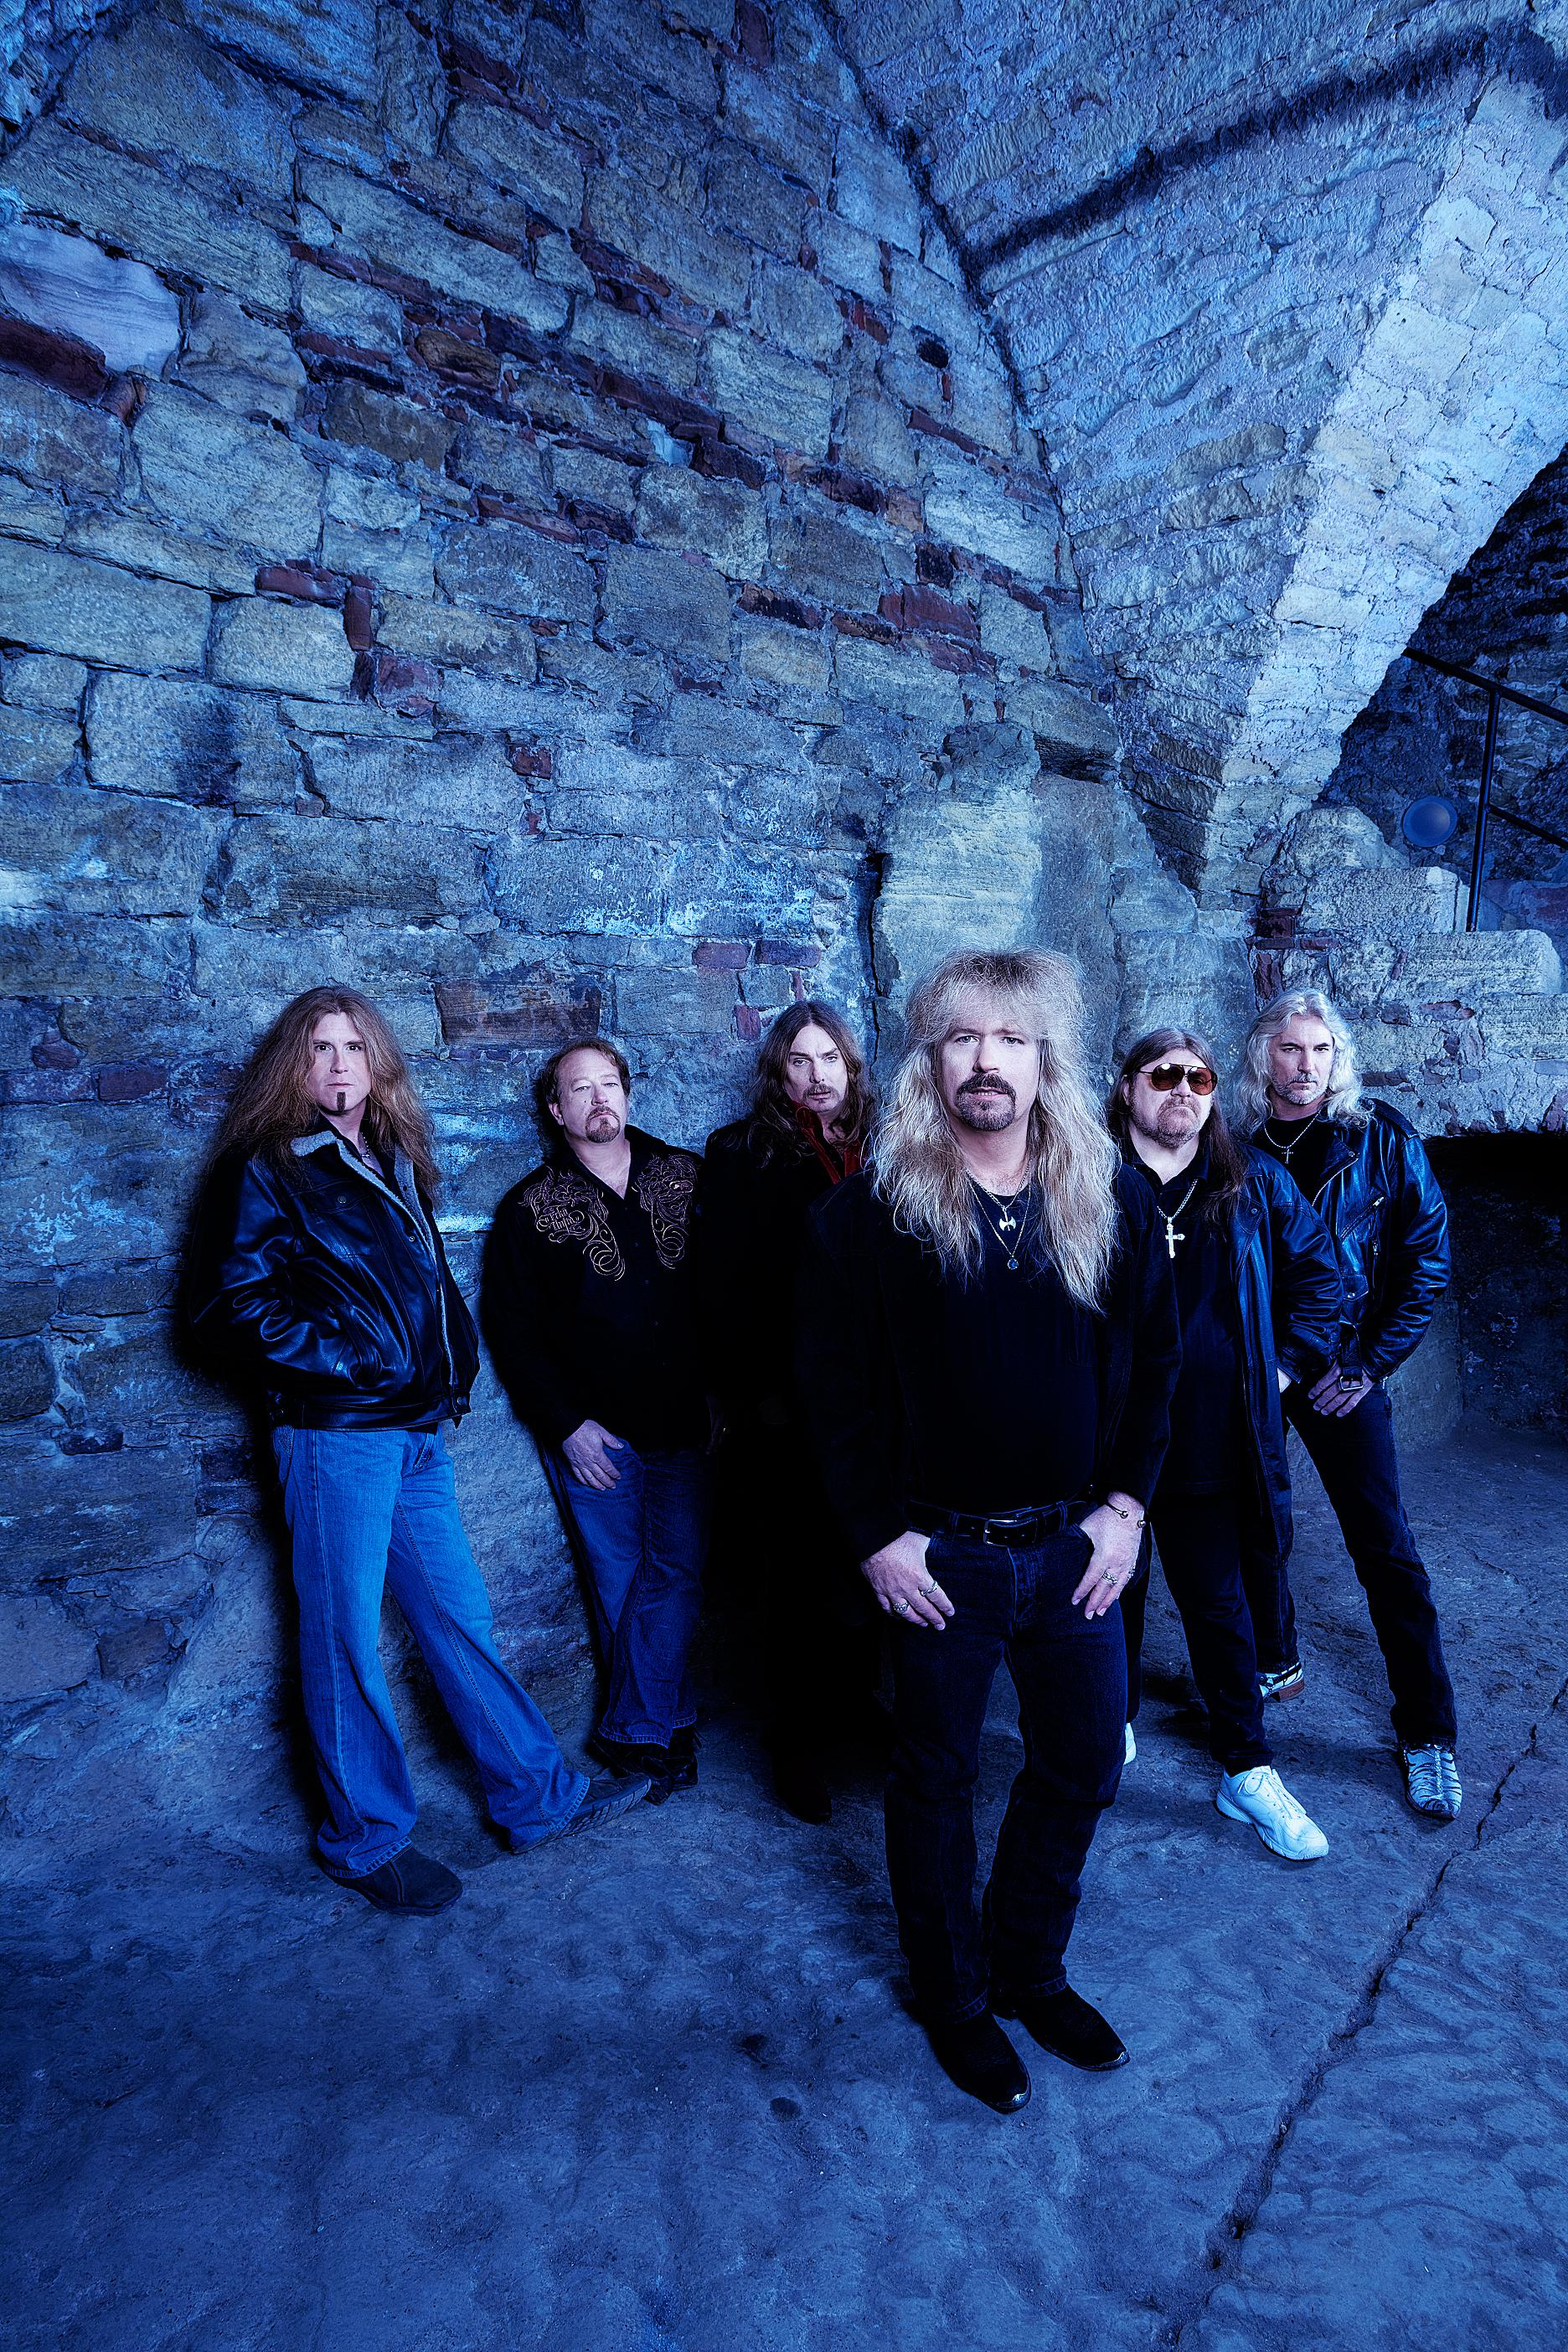 Molly Hatchet Photo